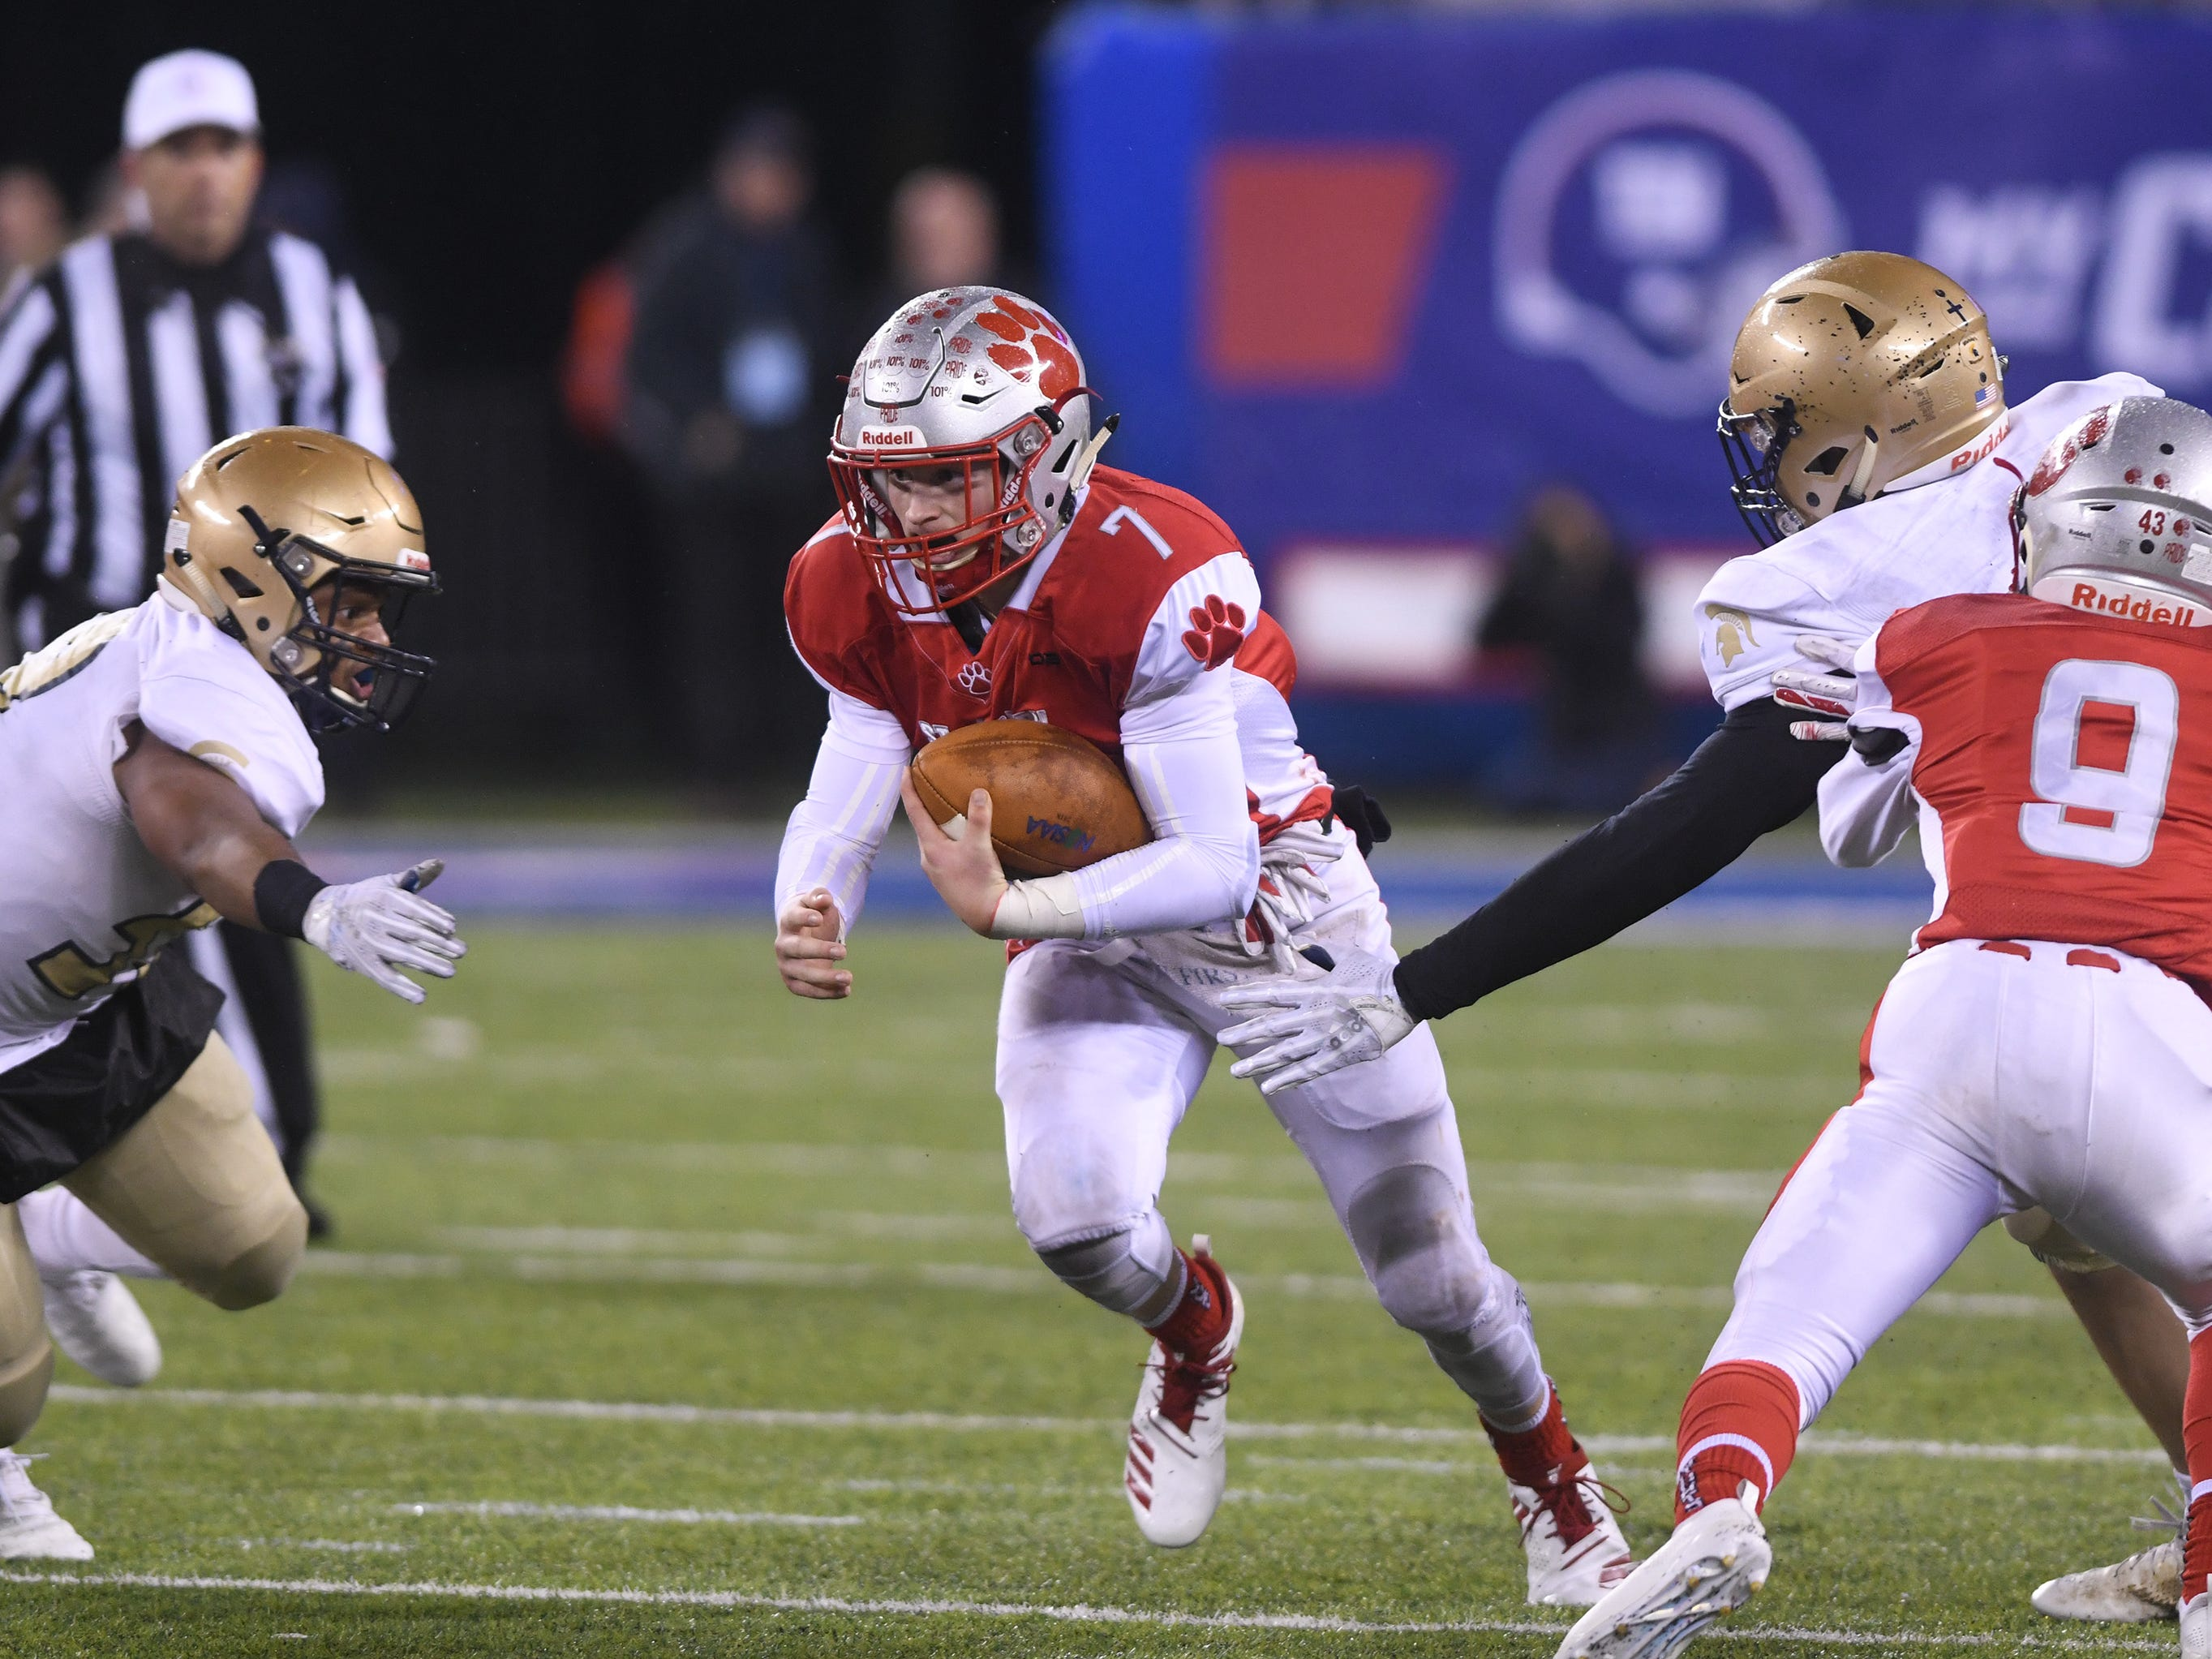 St. Joseph's QB, Jayden Shertel runs for a gain against Holy Spirit. The Wildcats topped the Spartans, 41-22 at MetLife Stadium on Friday, November 30, 2018.